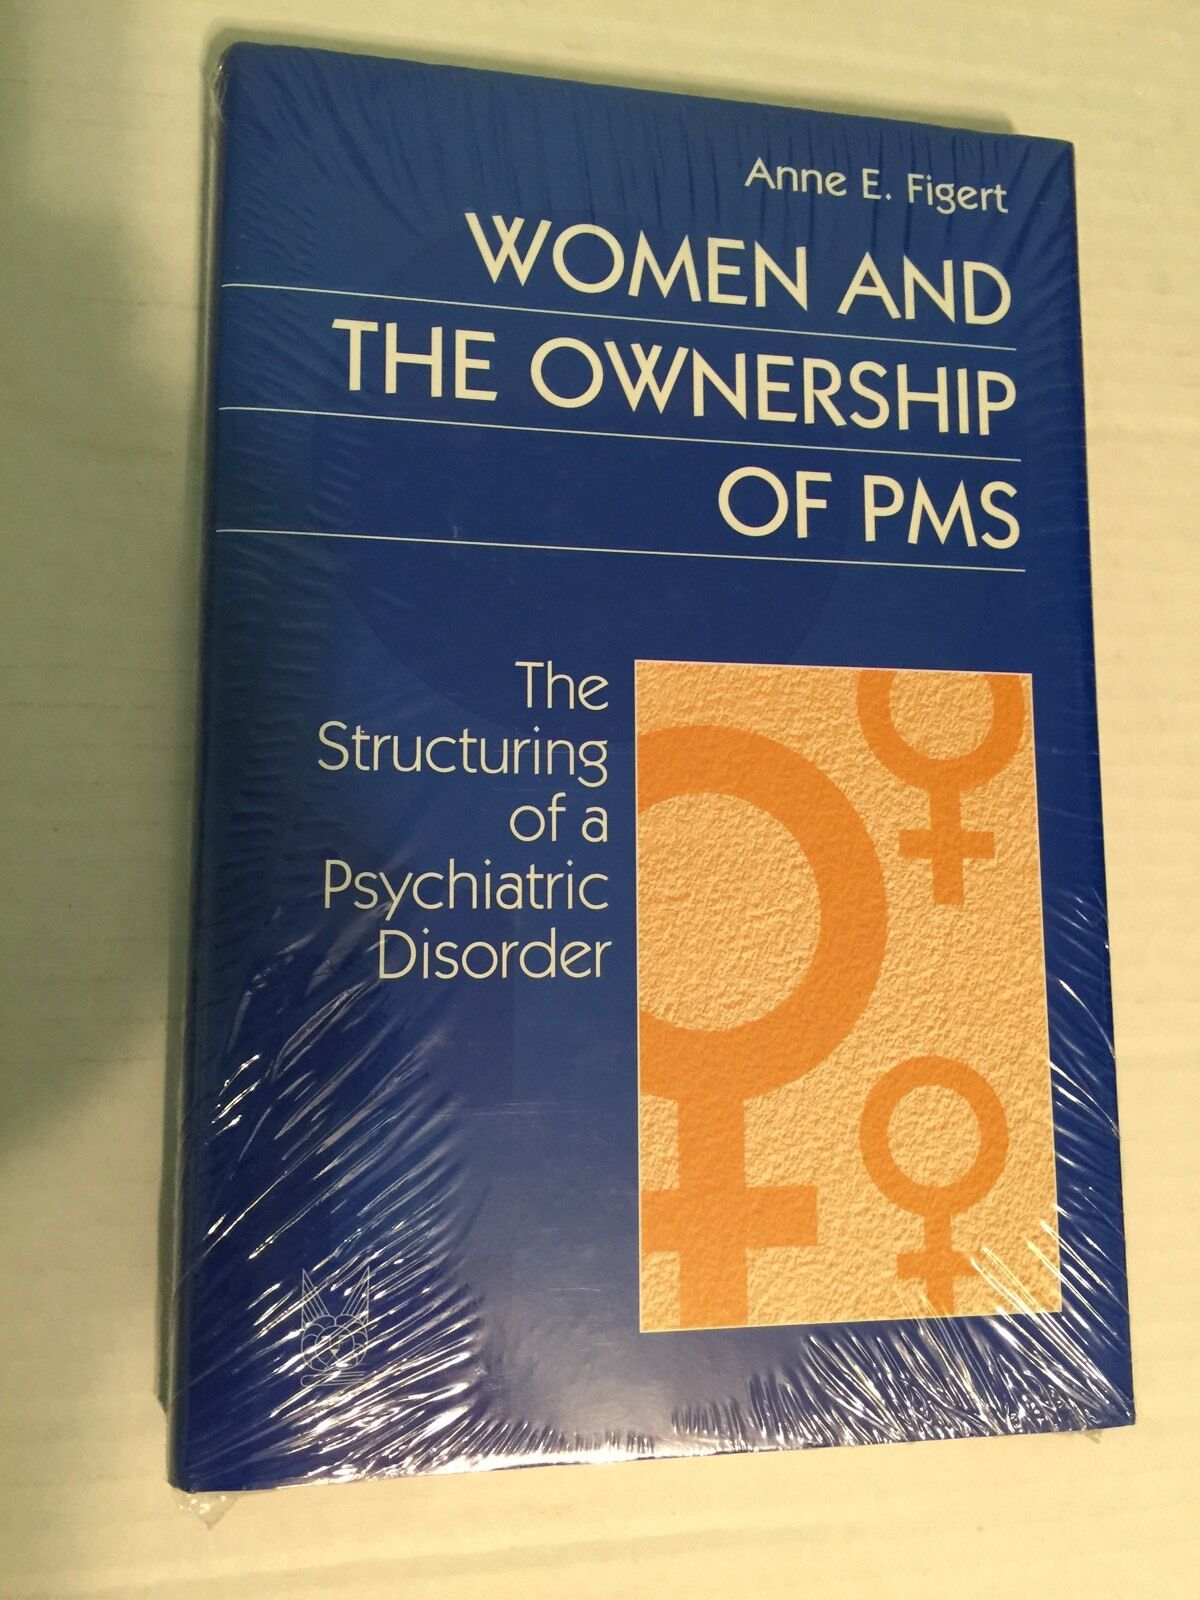 Women and the Ownership of PMS : Anne E Figert Paperback Book